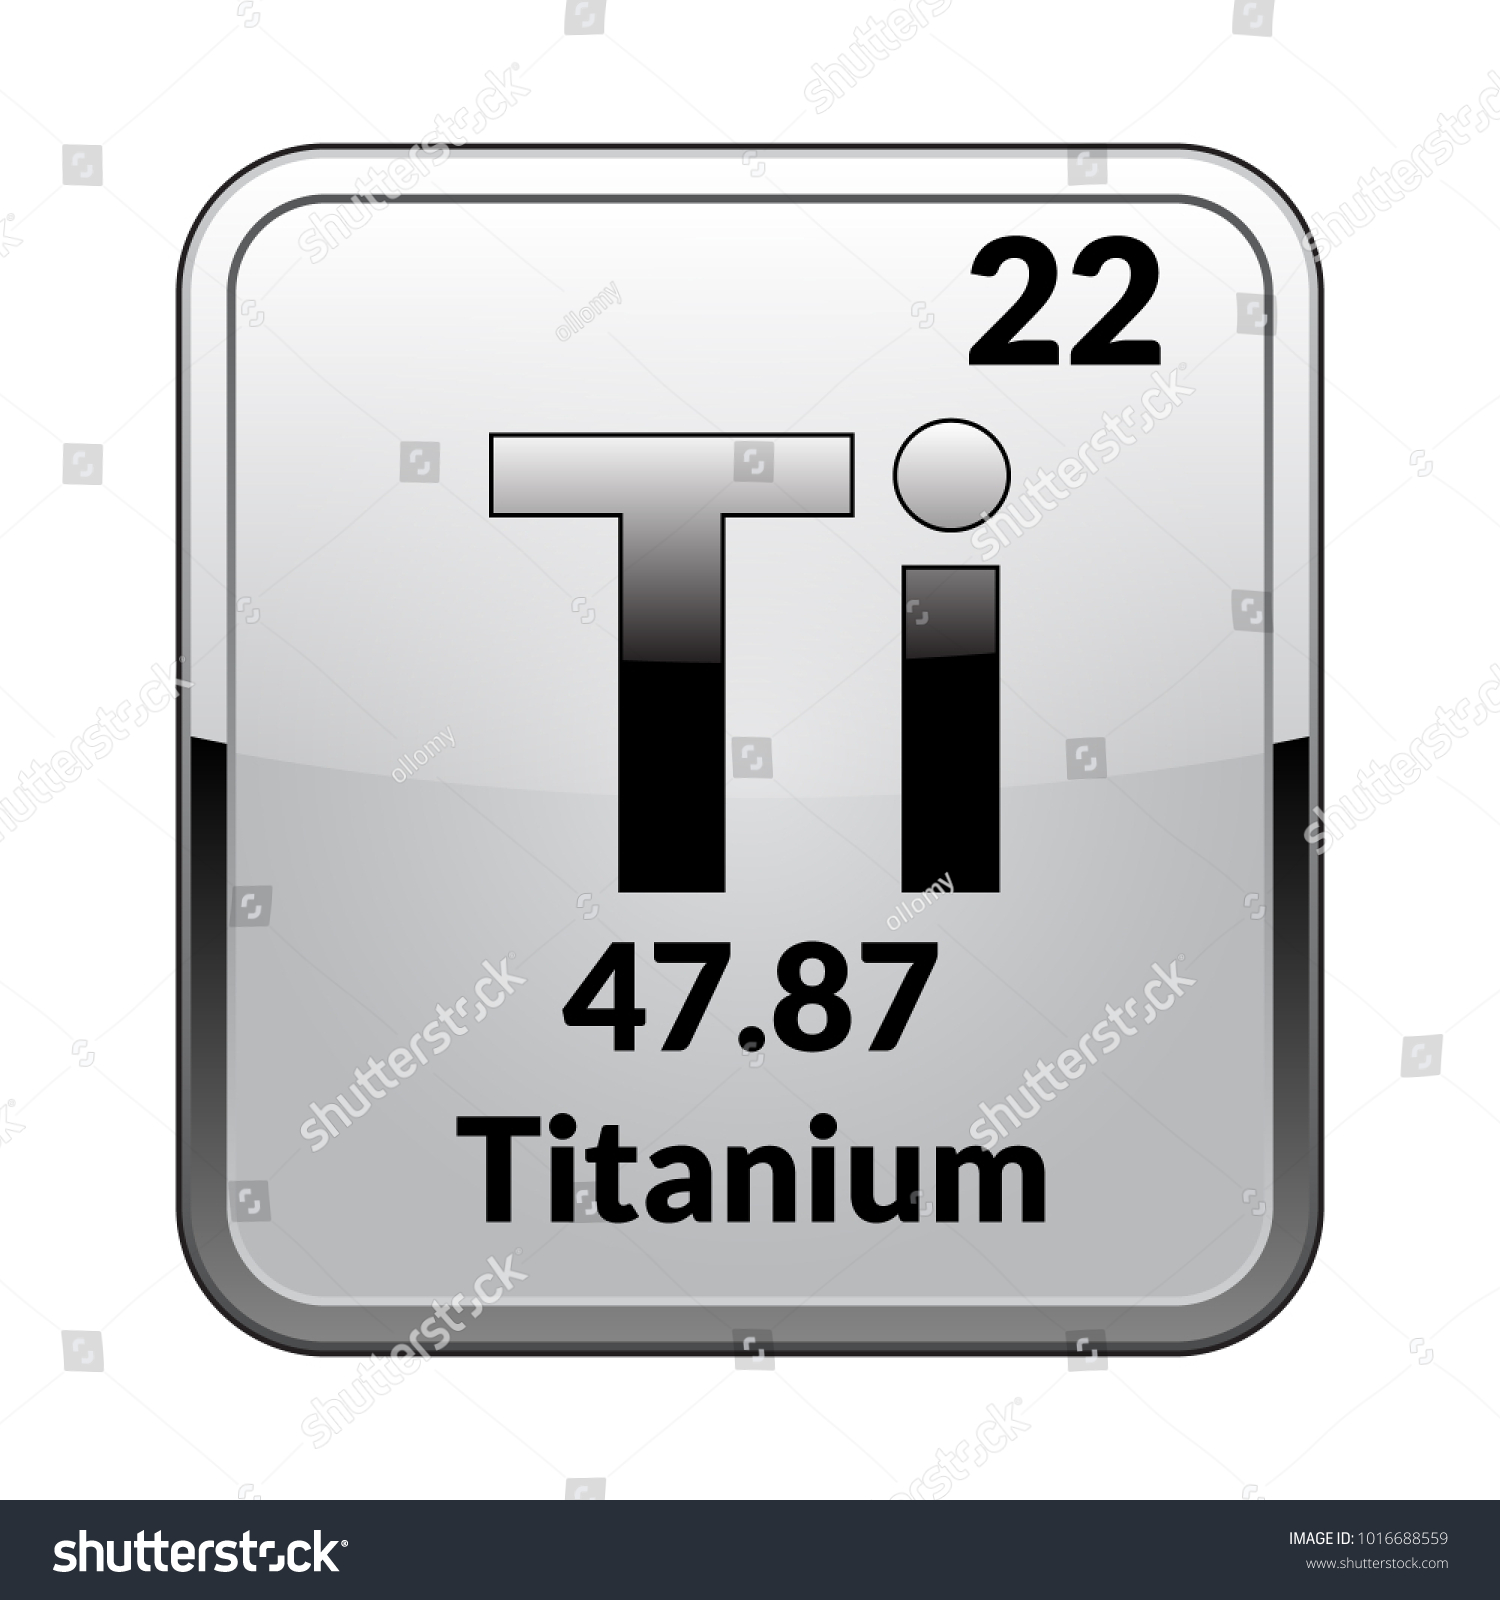 What is the periodic table symbol for silver image collections titanium symbolchemical element periodic table on stock vector titanium symbolemical element of the periodic table on urtaz Image collections